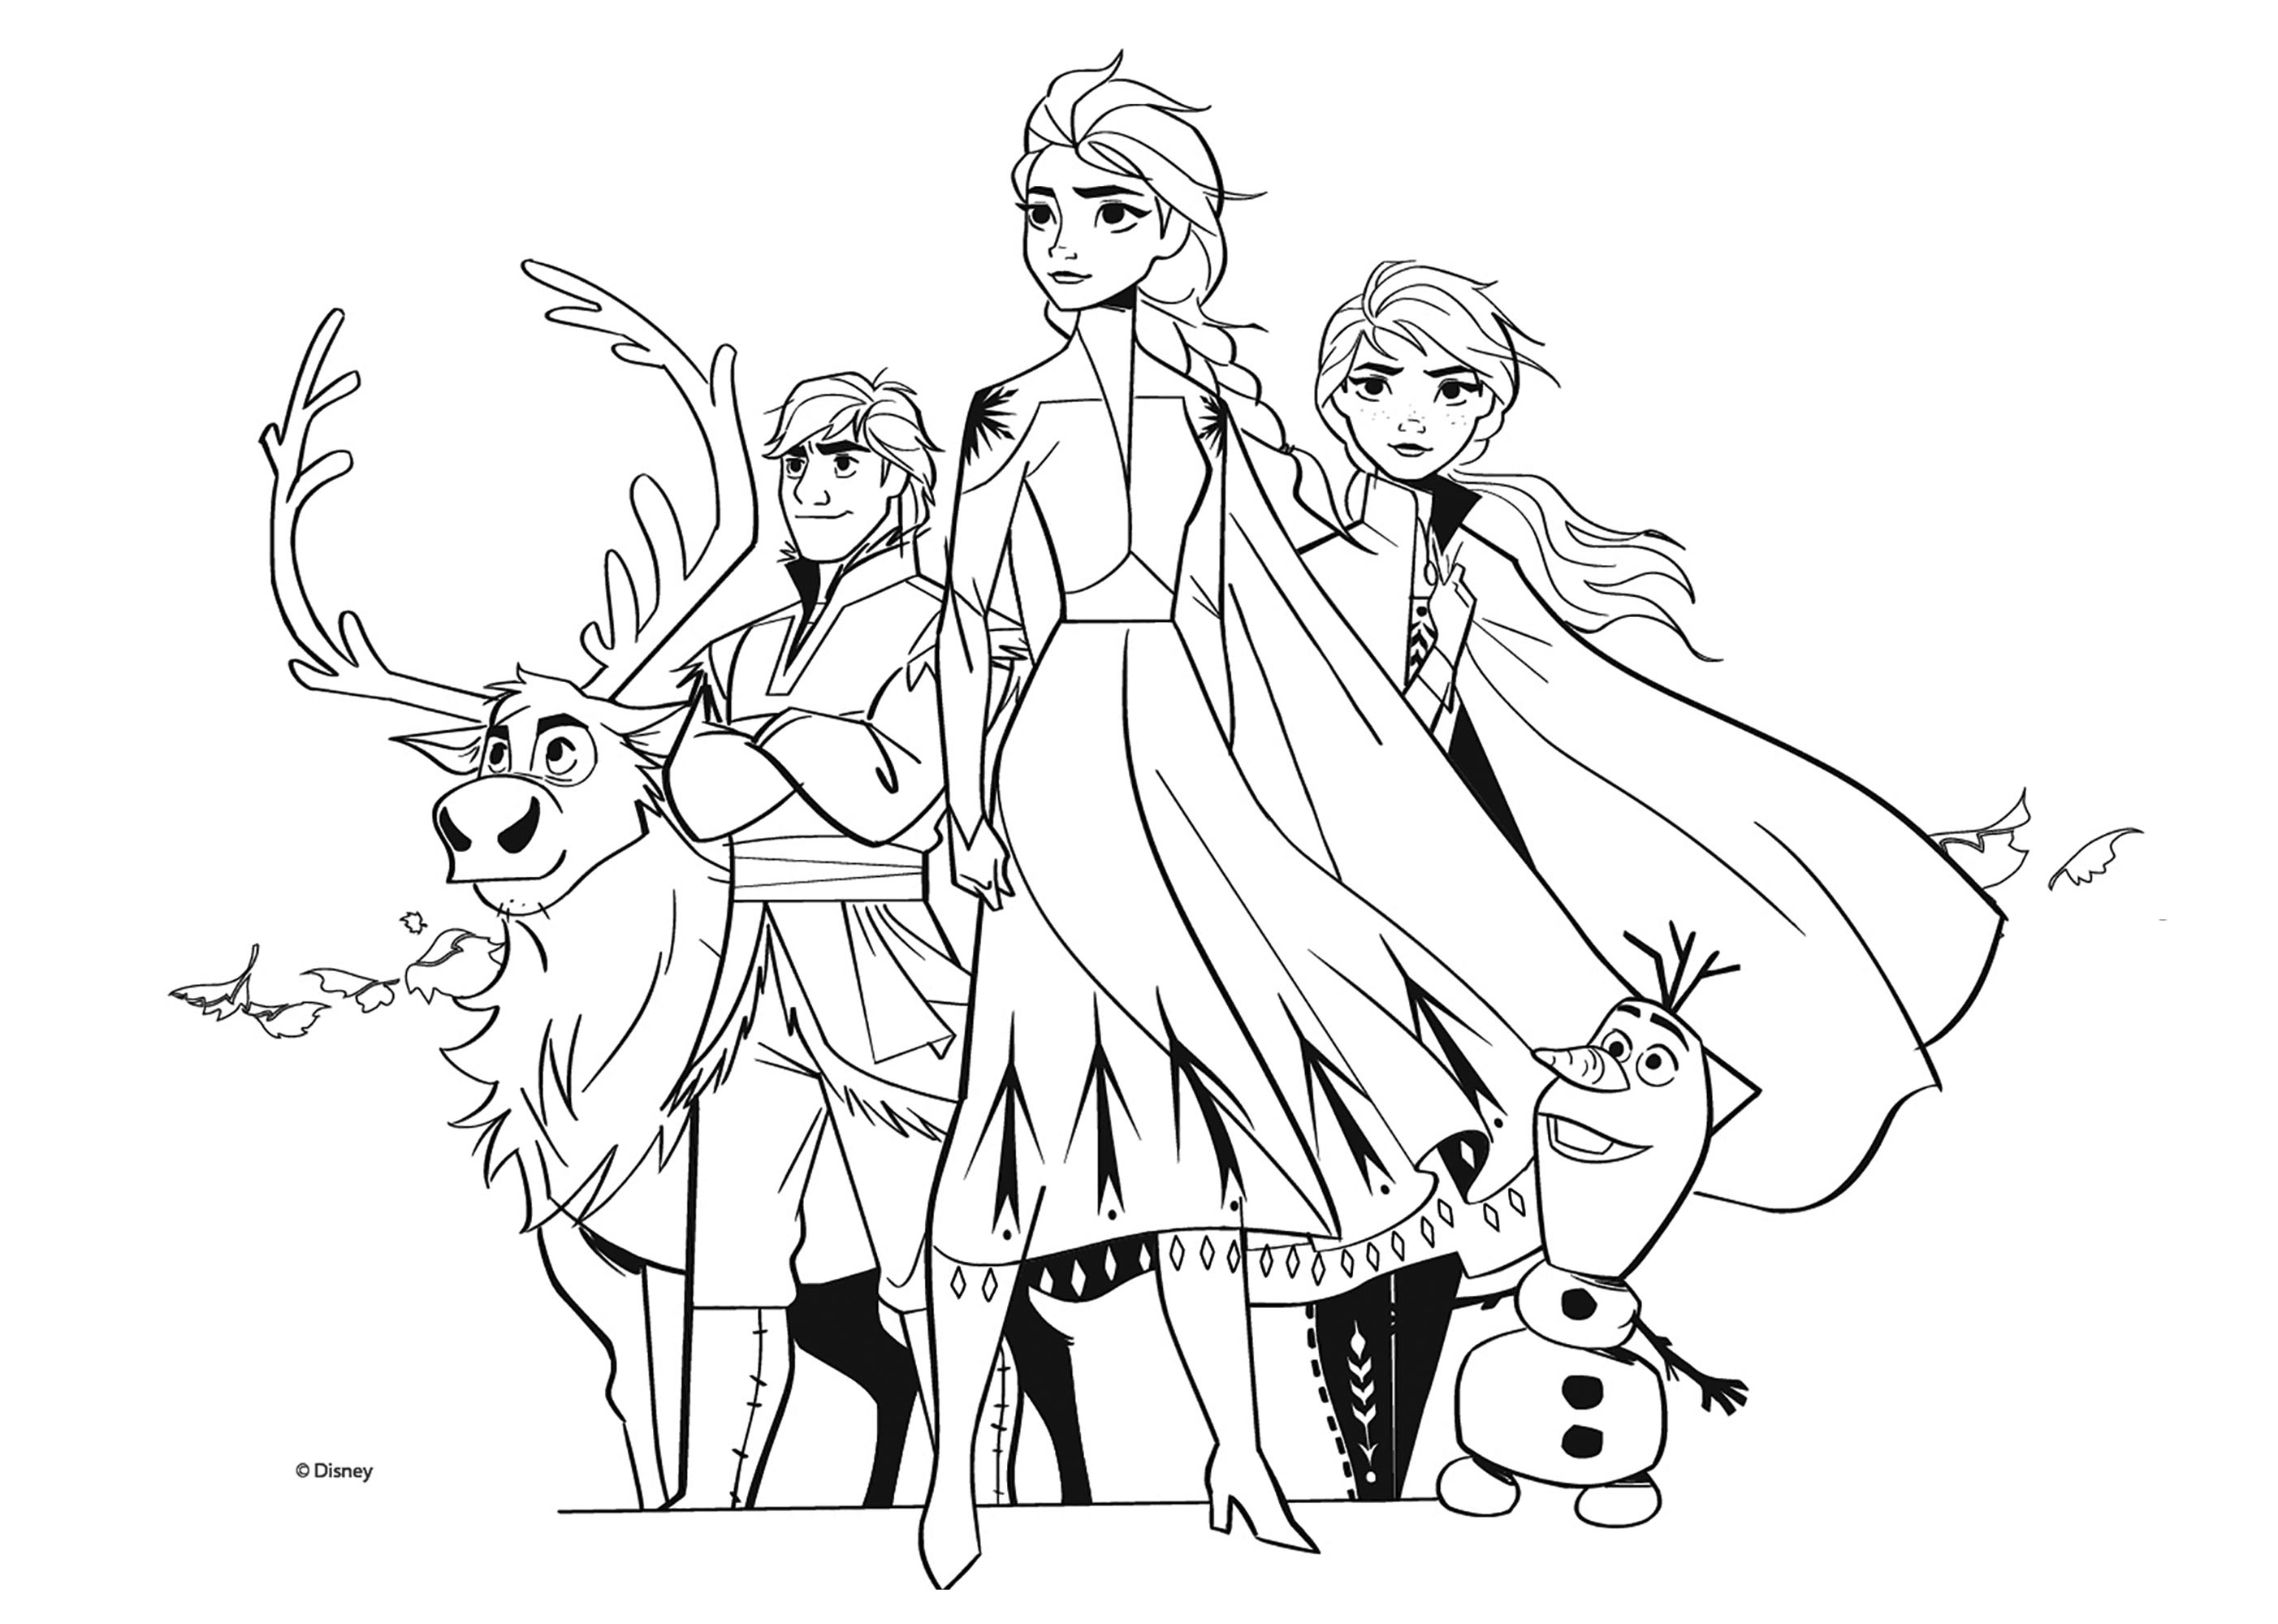 Frozen 2 to print - Frozen 2 Kids Coloring Pages